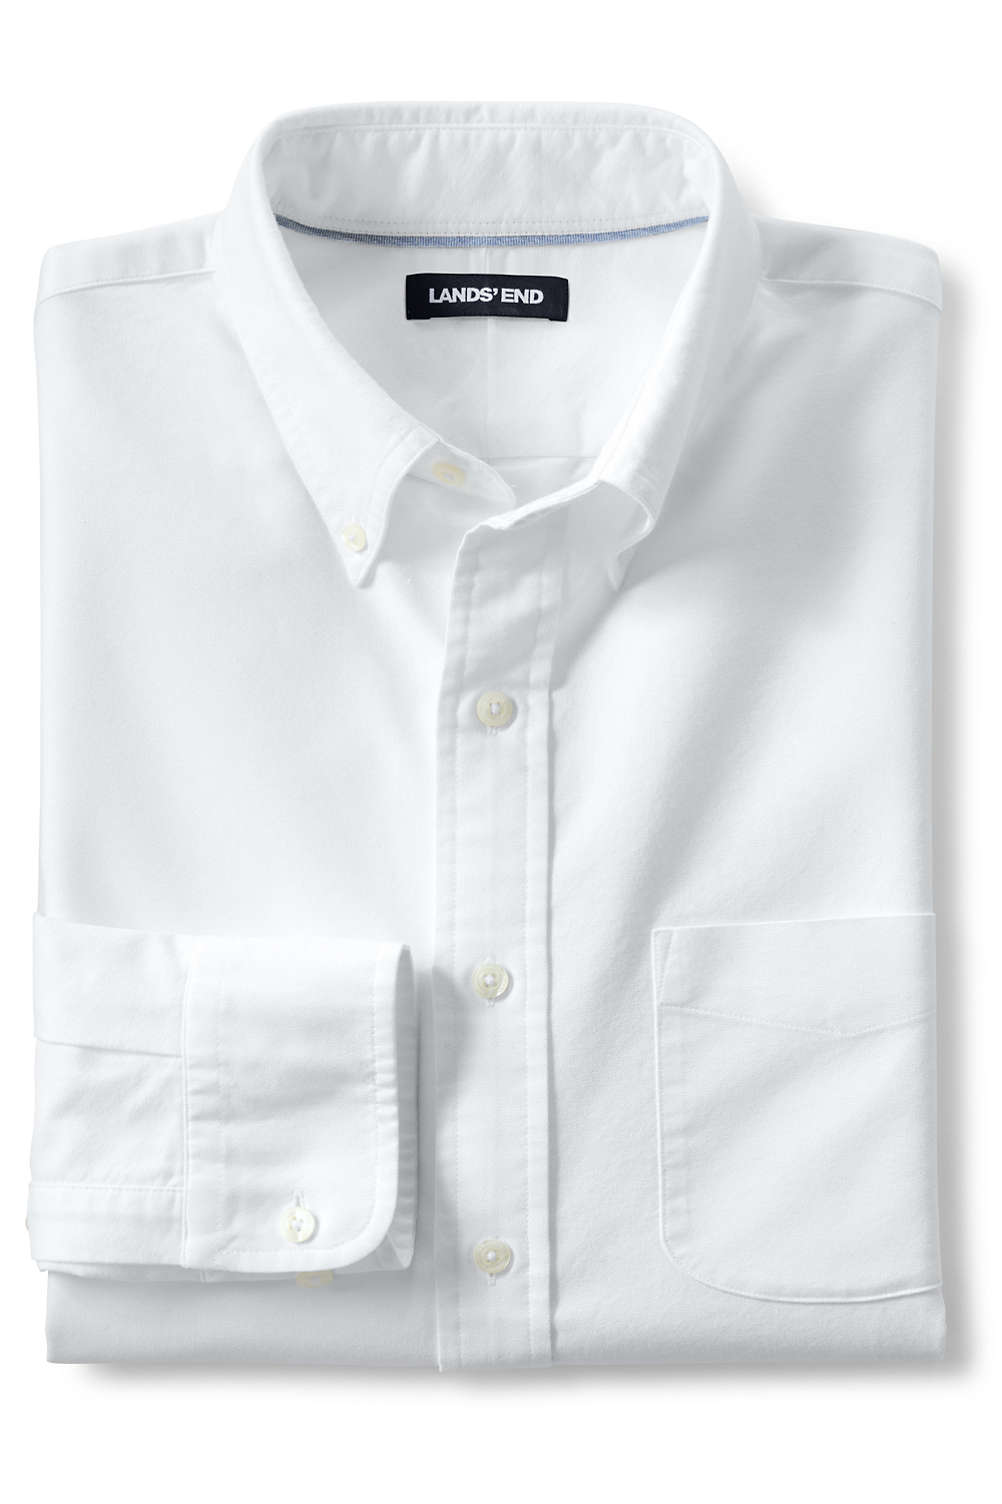 11f138dbc43b Men's Traditional Fit Buttondown Solid Sail Rigger Oxford Shirt. 4.1. Rated  4.06 out of ...